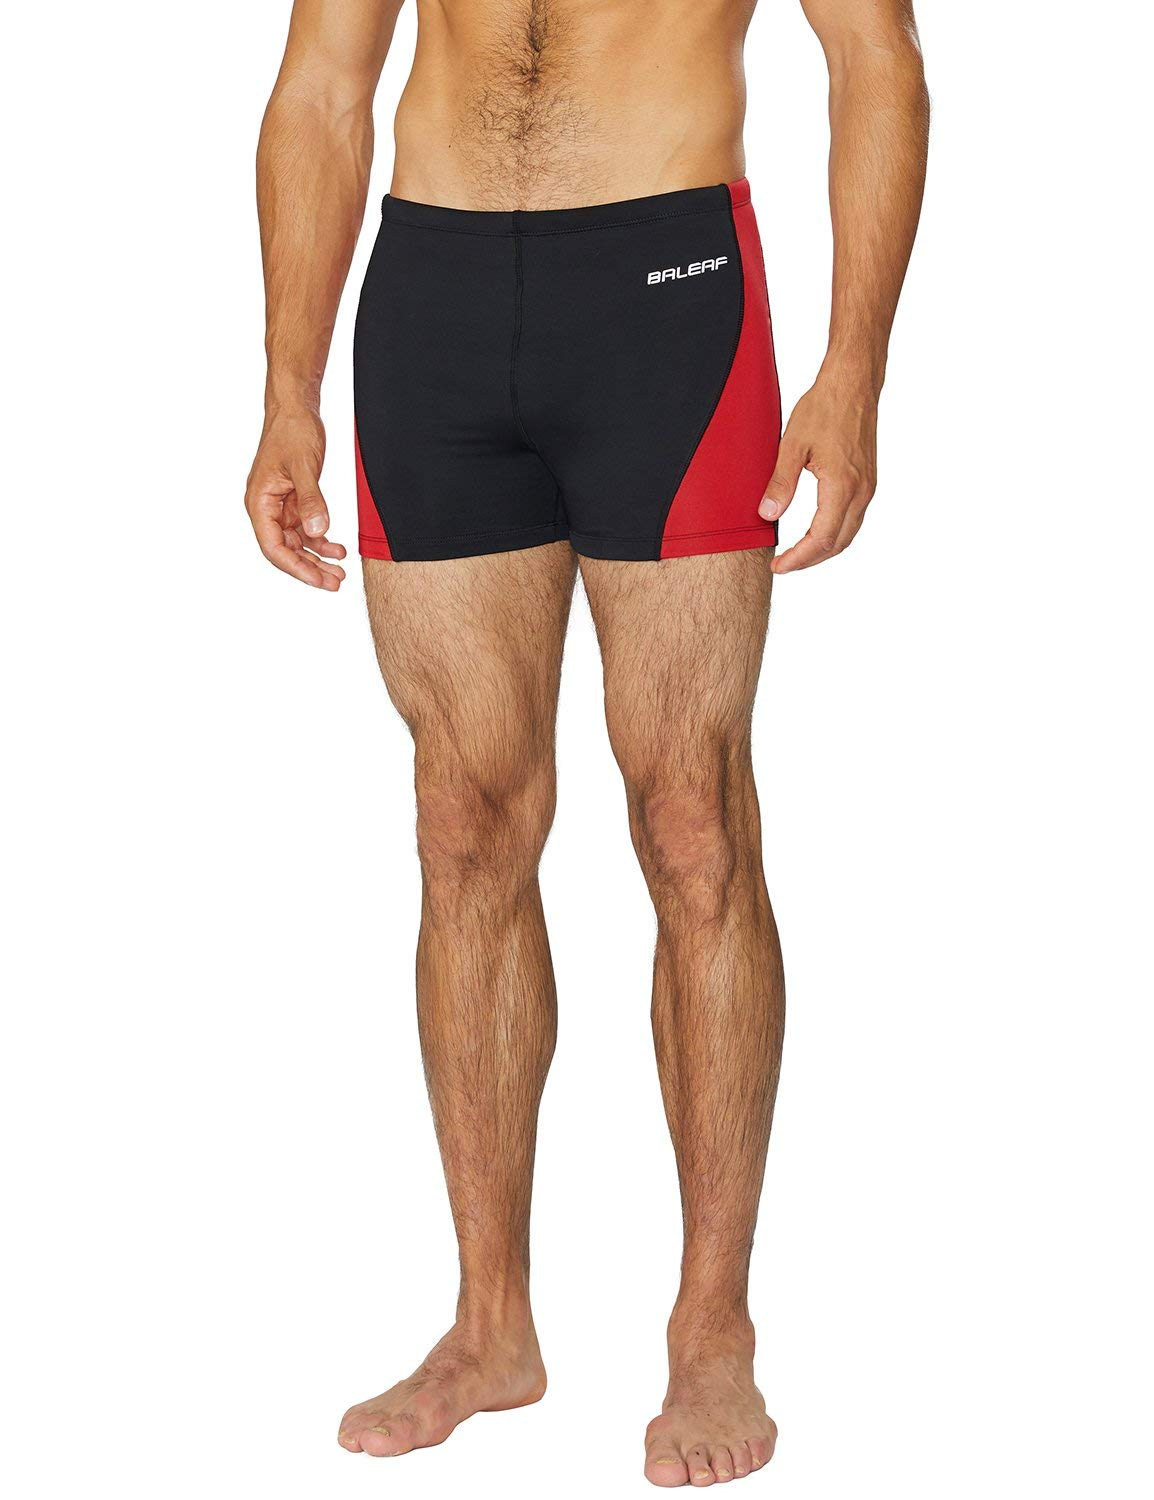 BALEAF Mens' Athletic Durable Training Polyester Quick Dry Compression Square Leg Jammers Swim Brief Swimsuit Black/Red Sise 34 by BALEAF